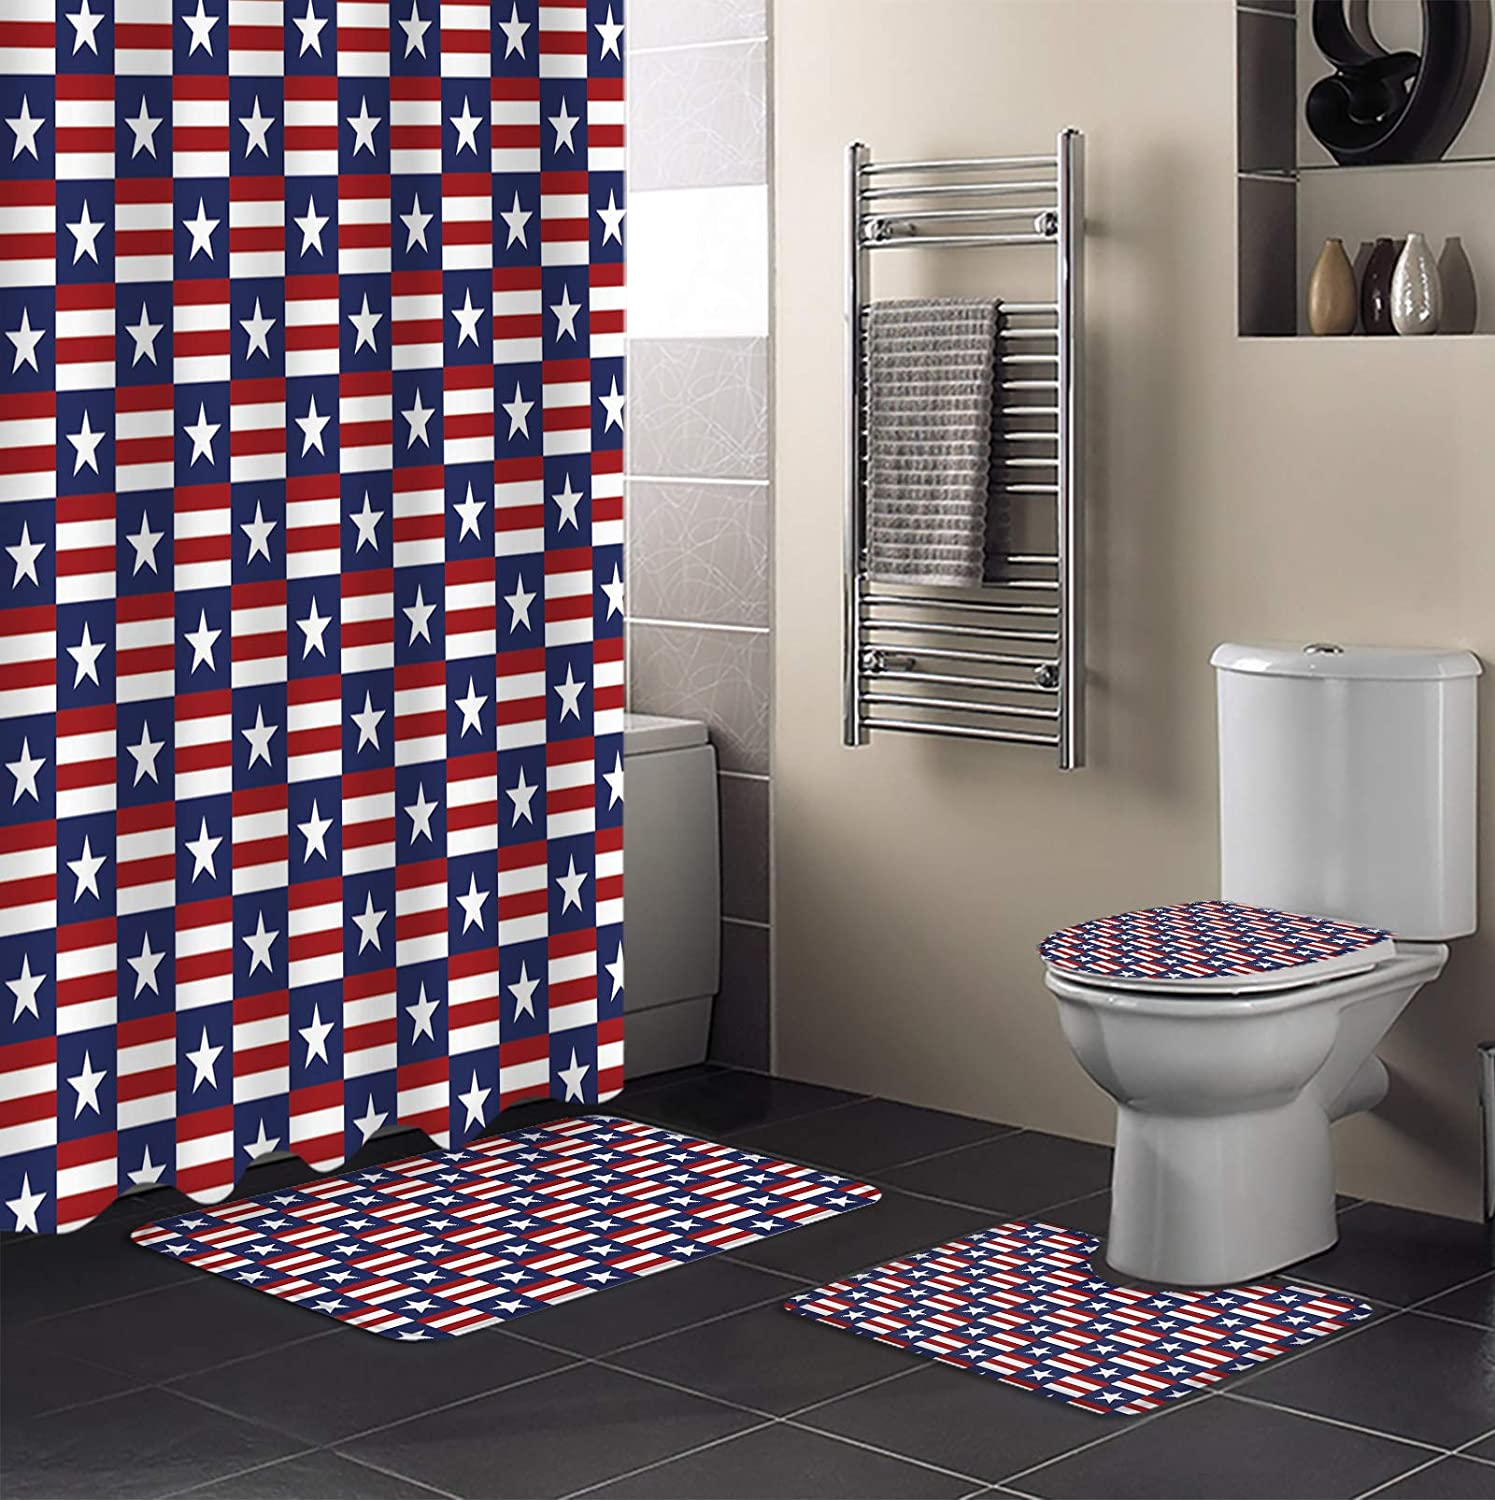 4 Piece Shower New product!! Curtain Sets Day Independence Flag Five- Virginia Beach Mall American